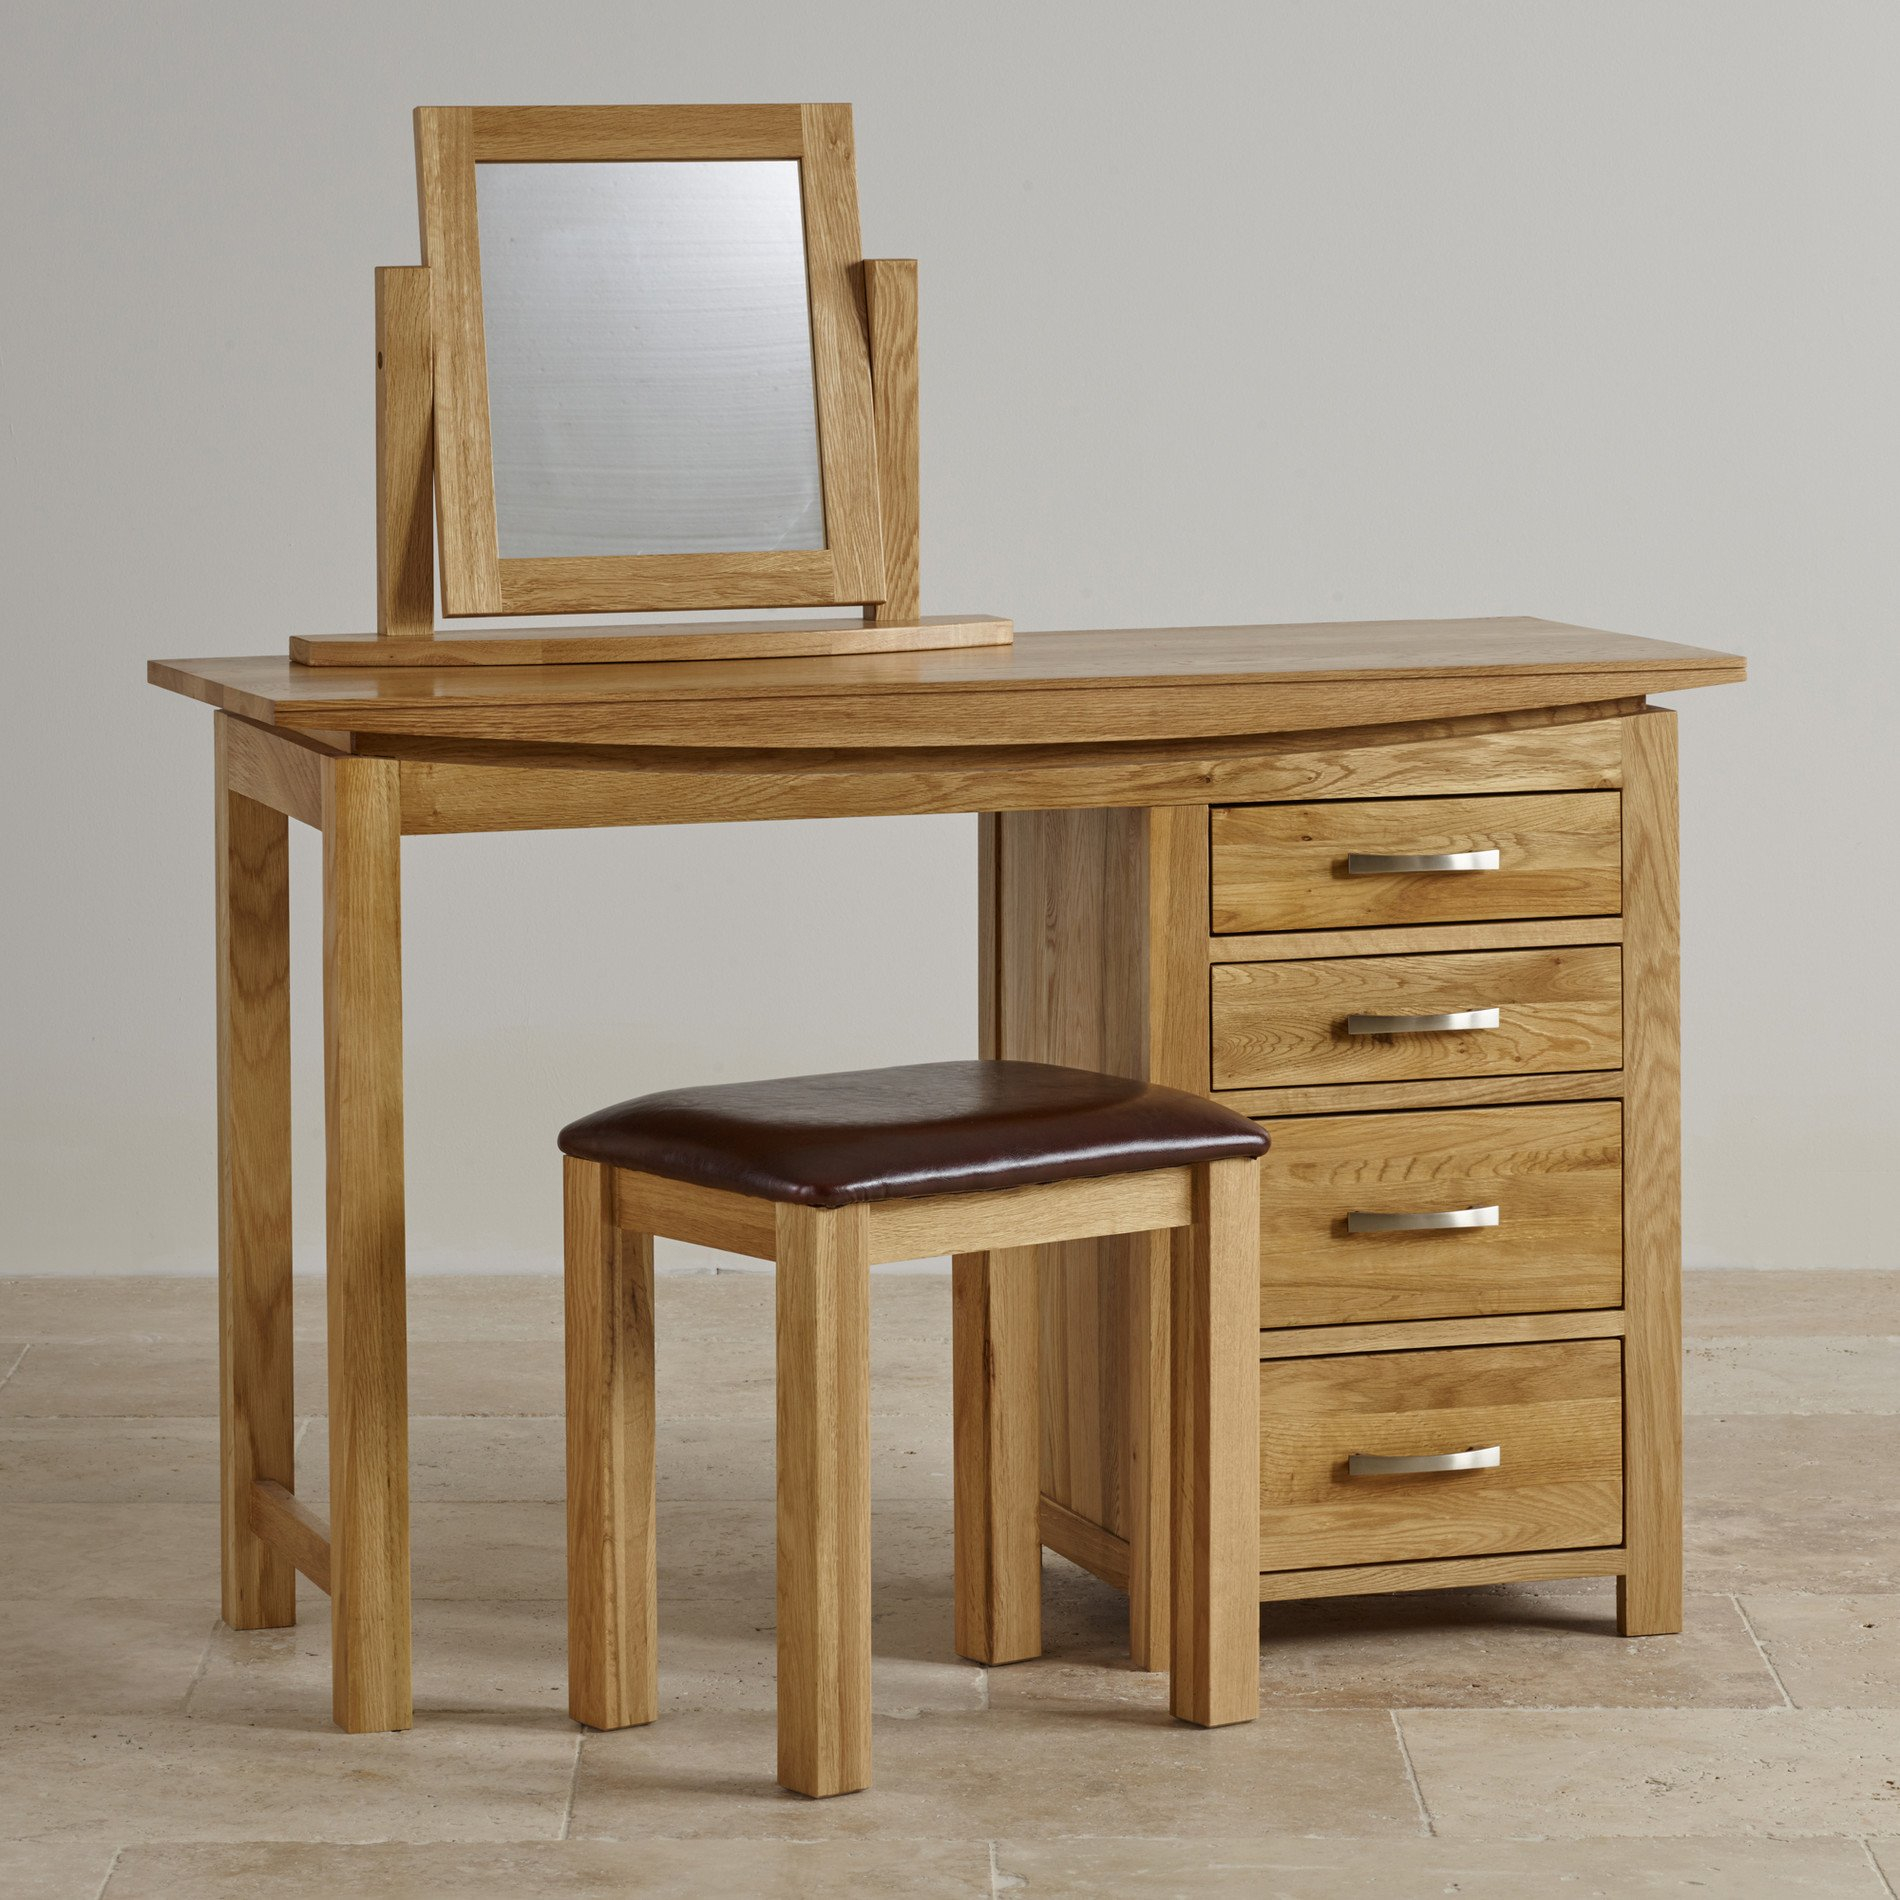 High Quality Oak Furniture Land